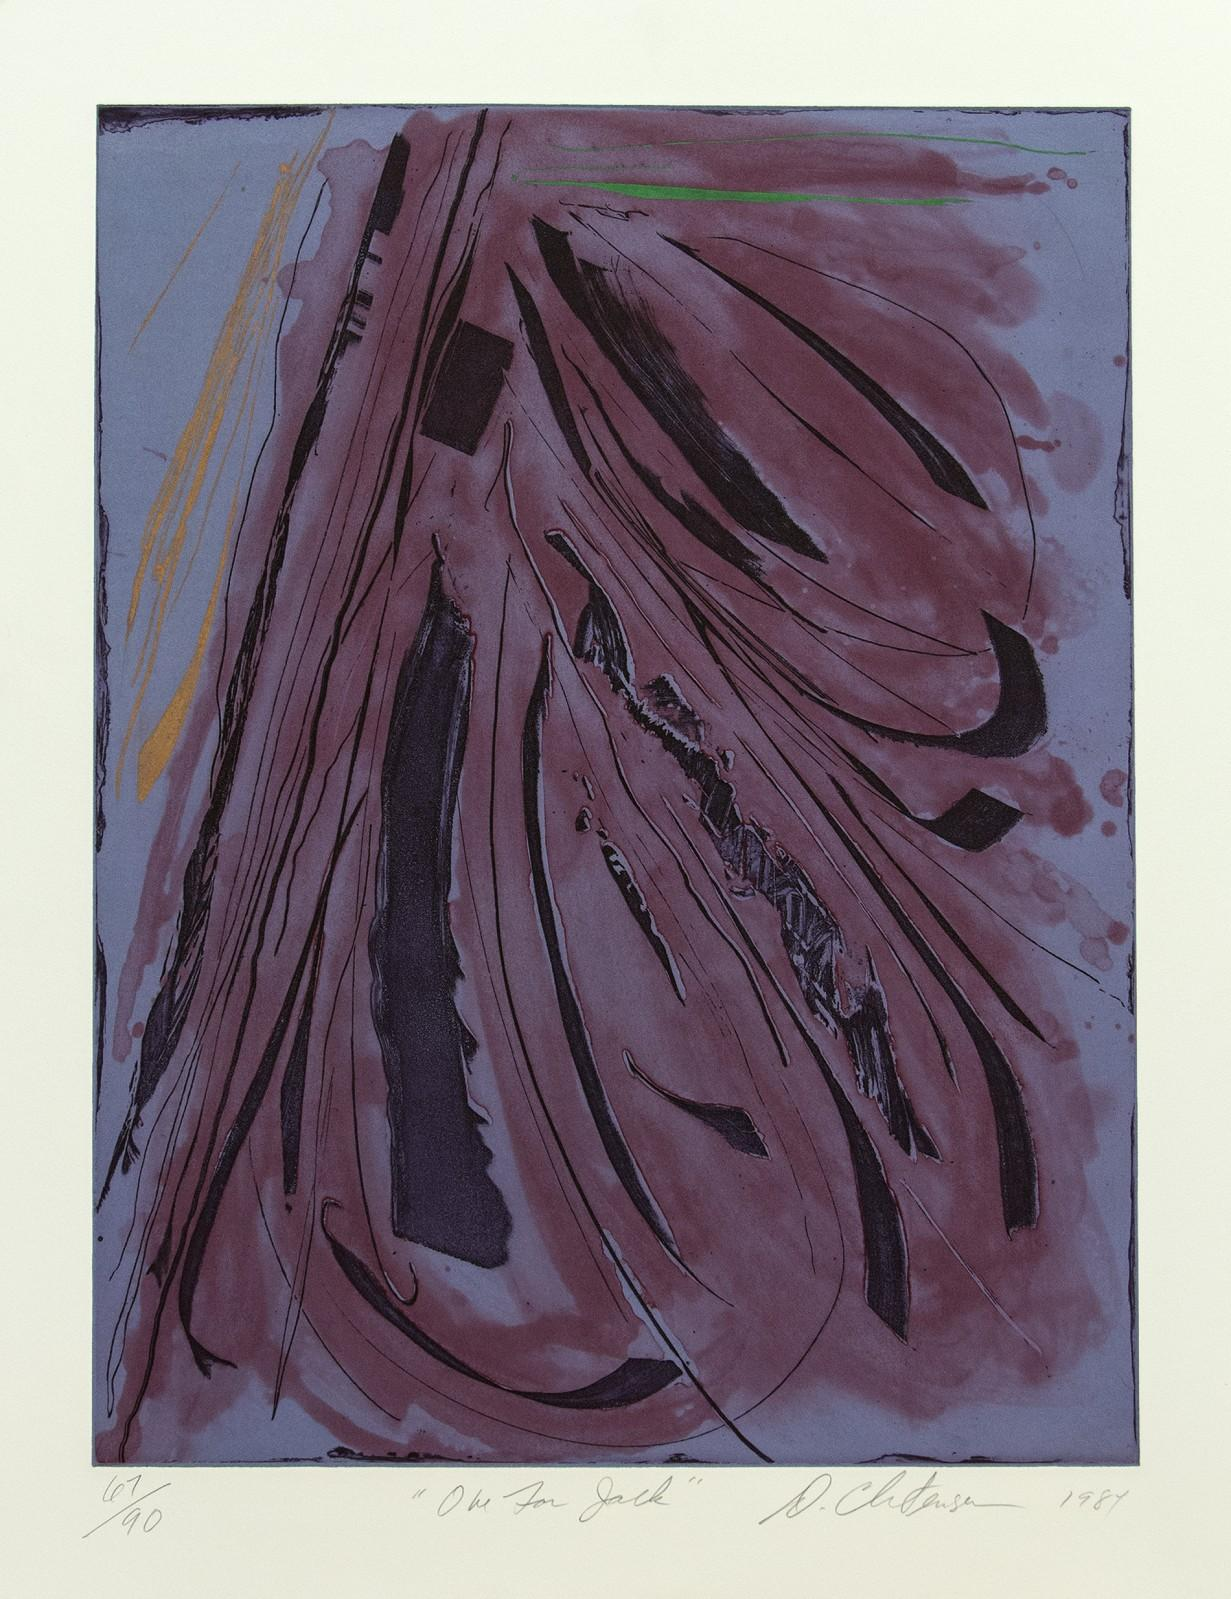 One For Jack - blue, purple, black, vibrant, gestural abstract ink etching